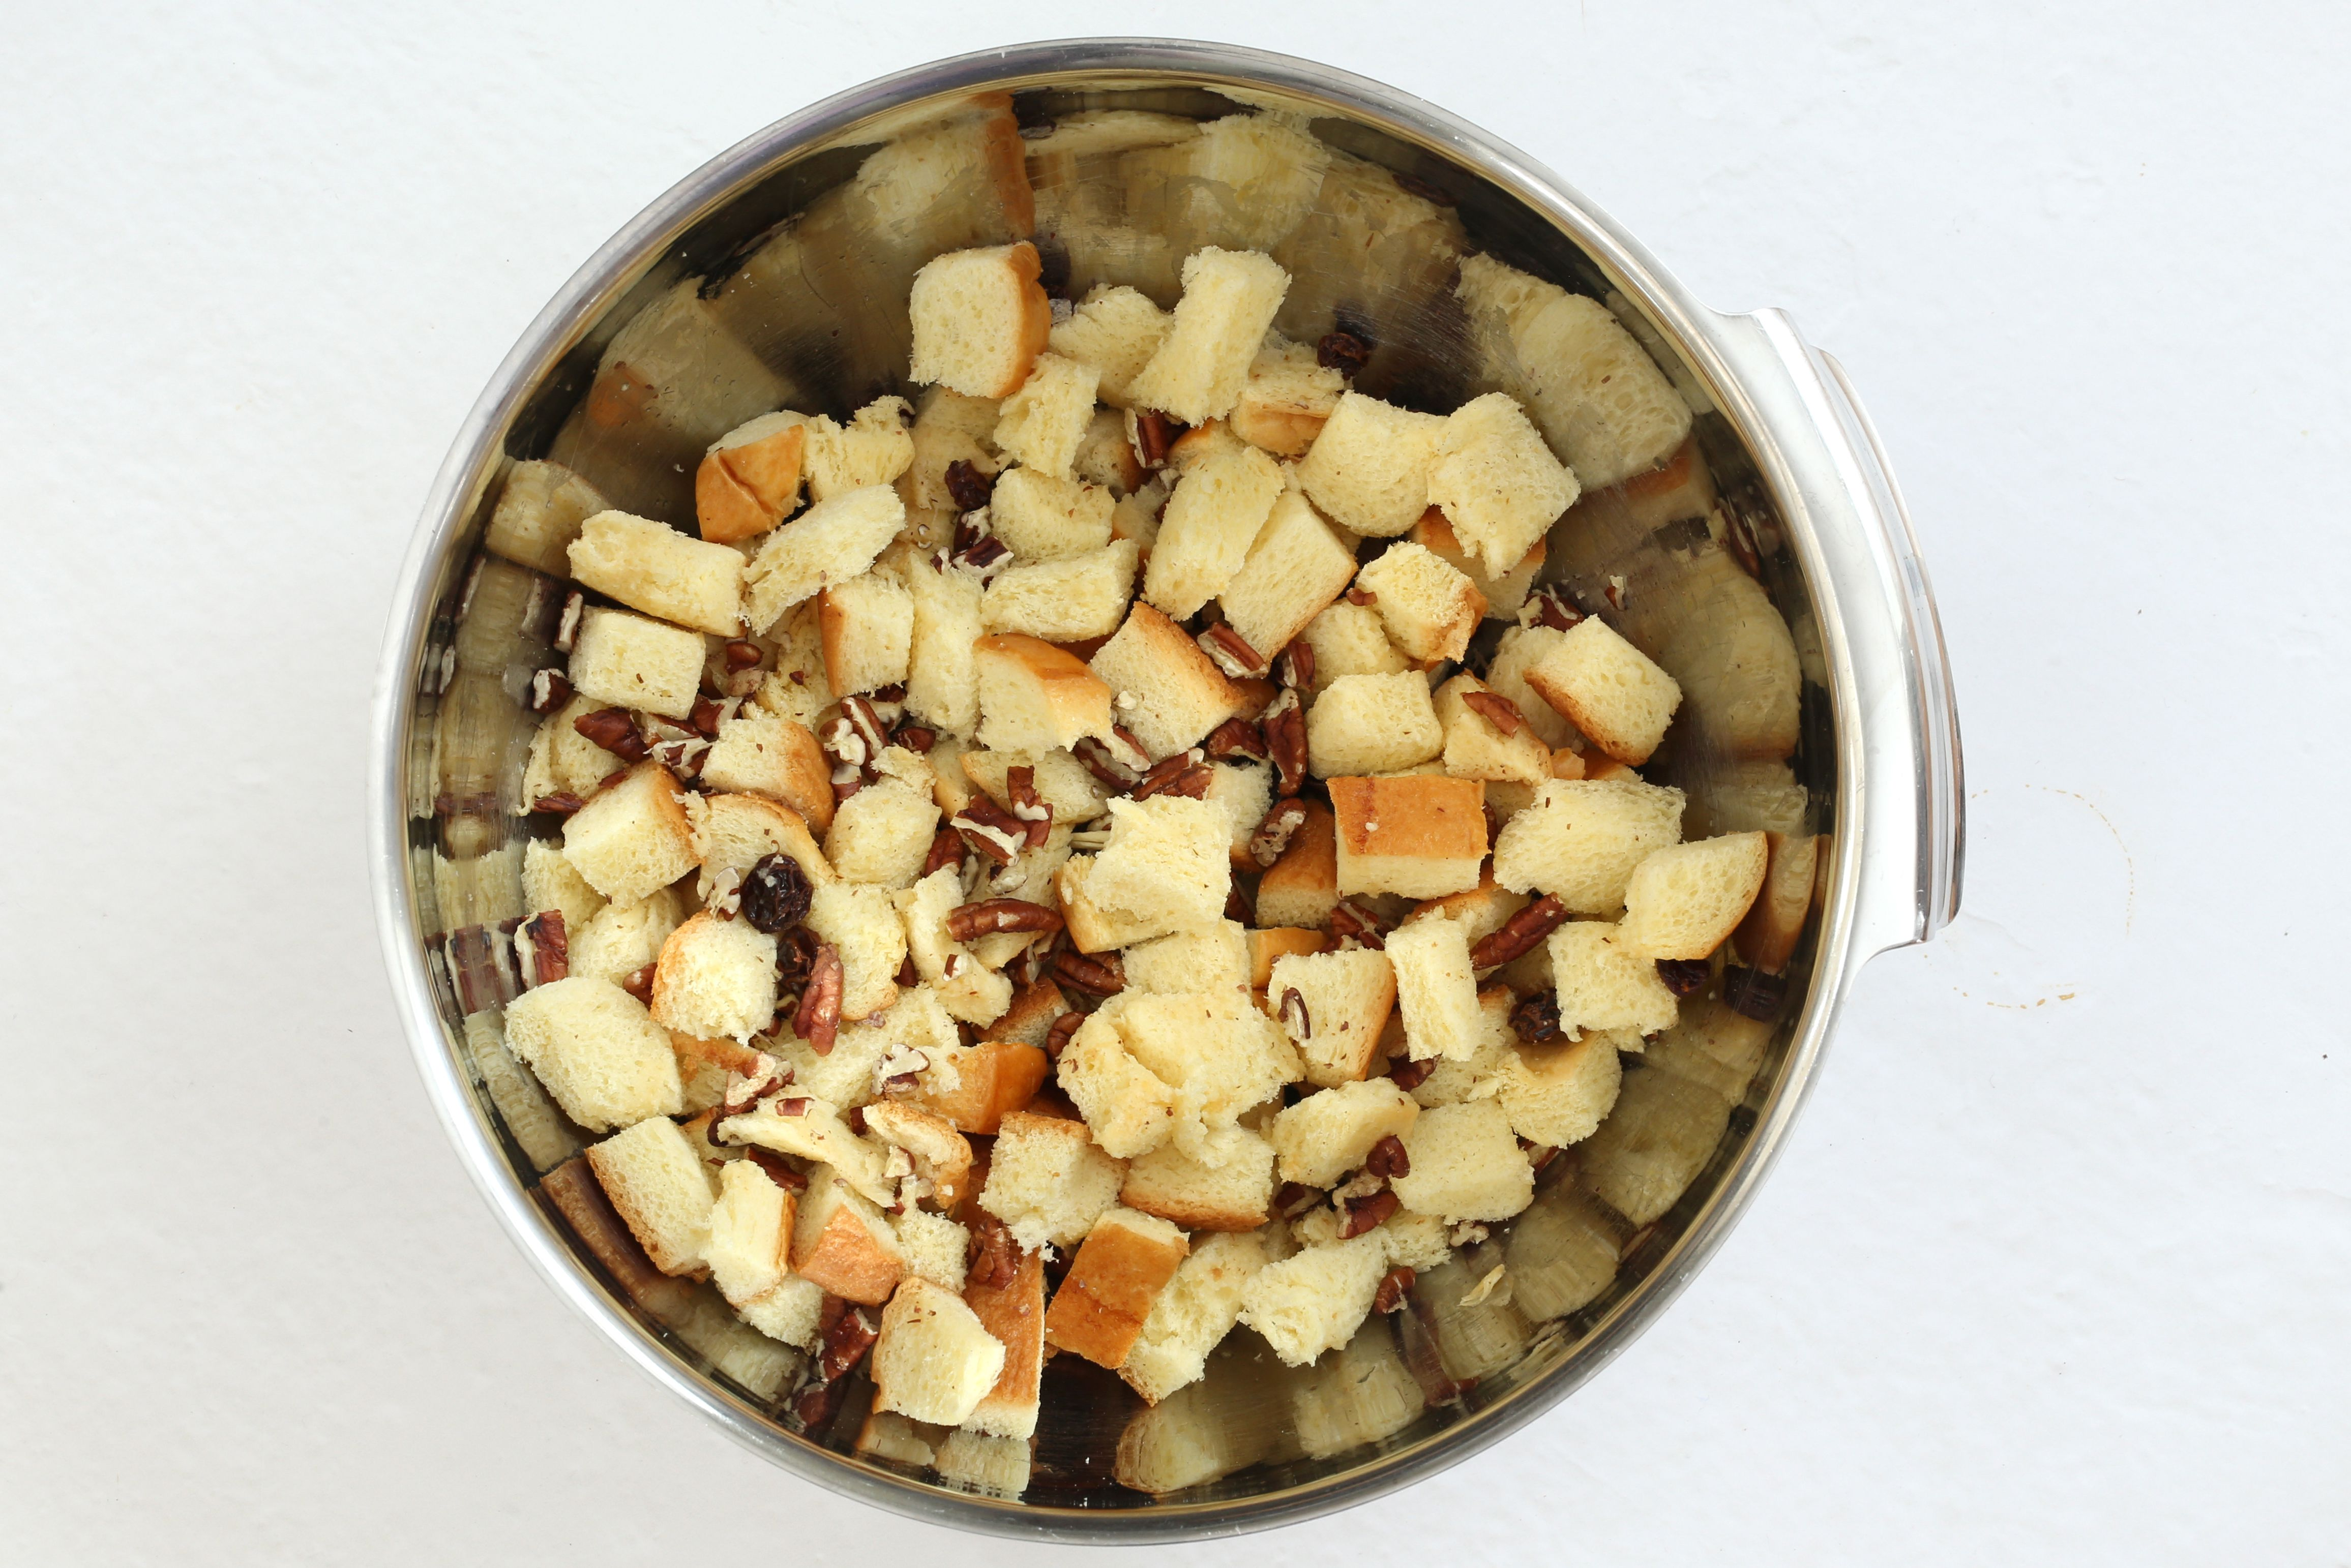 Toss the bread cubes, raisins, and nuts.